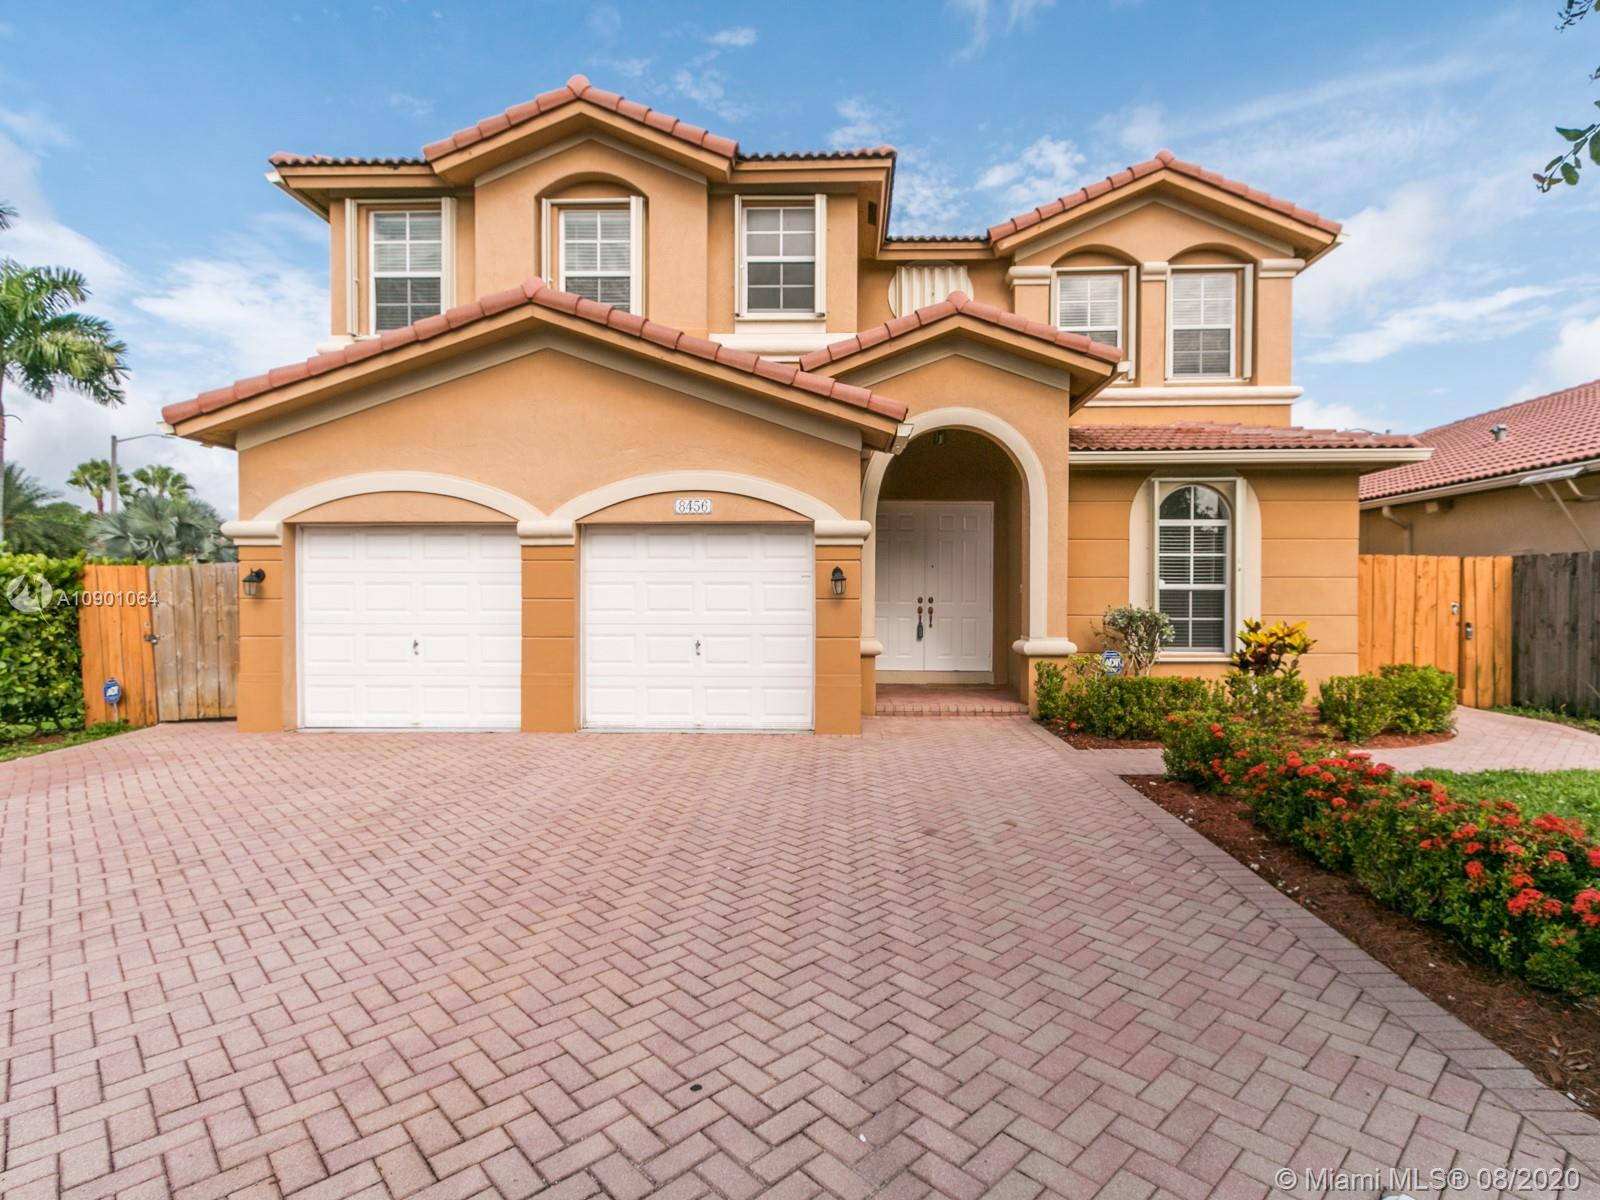 Islands At Doral - 8456 NW 111th Ct, Doral, FL 33178